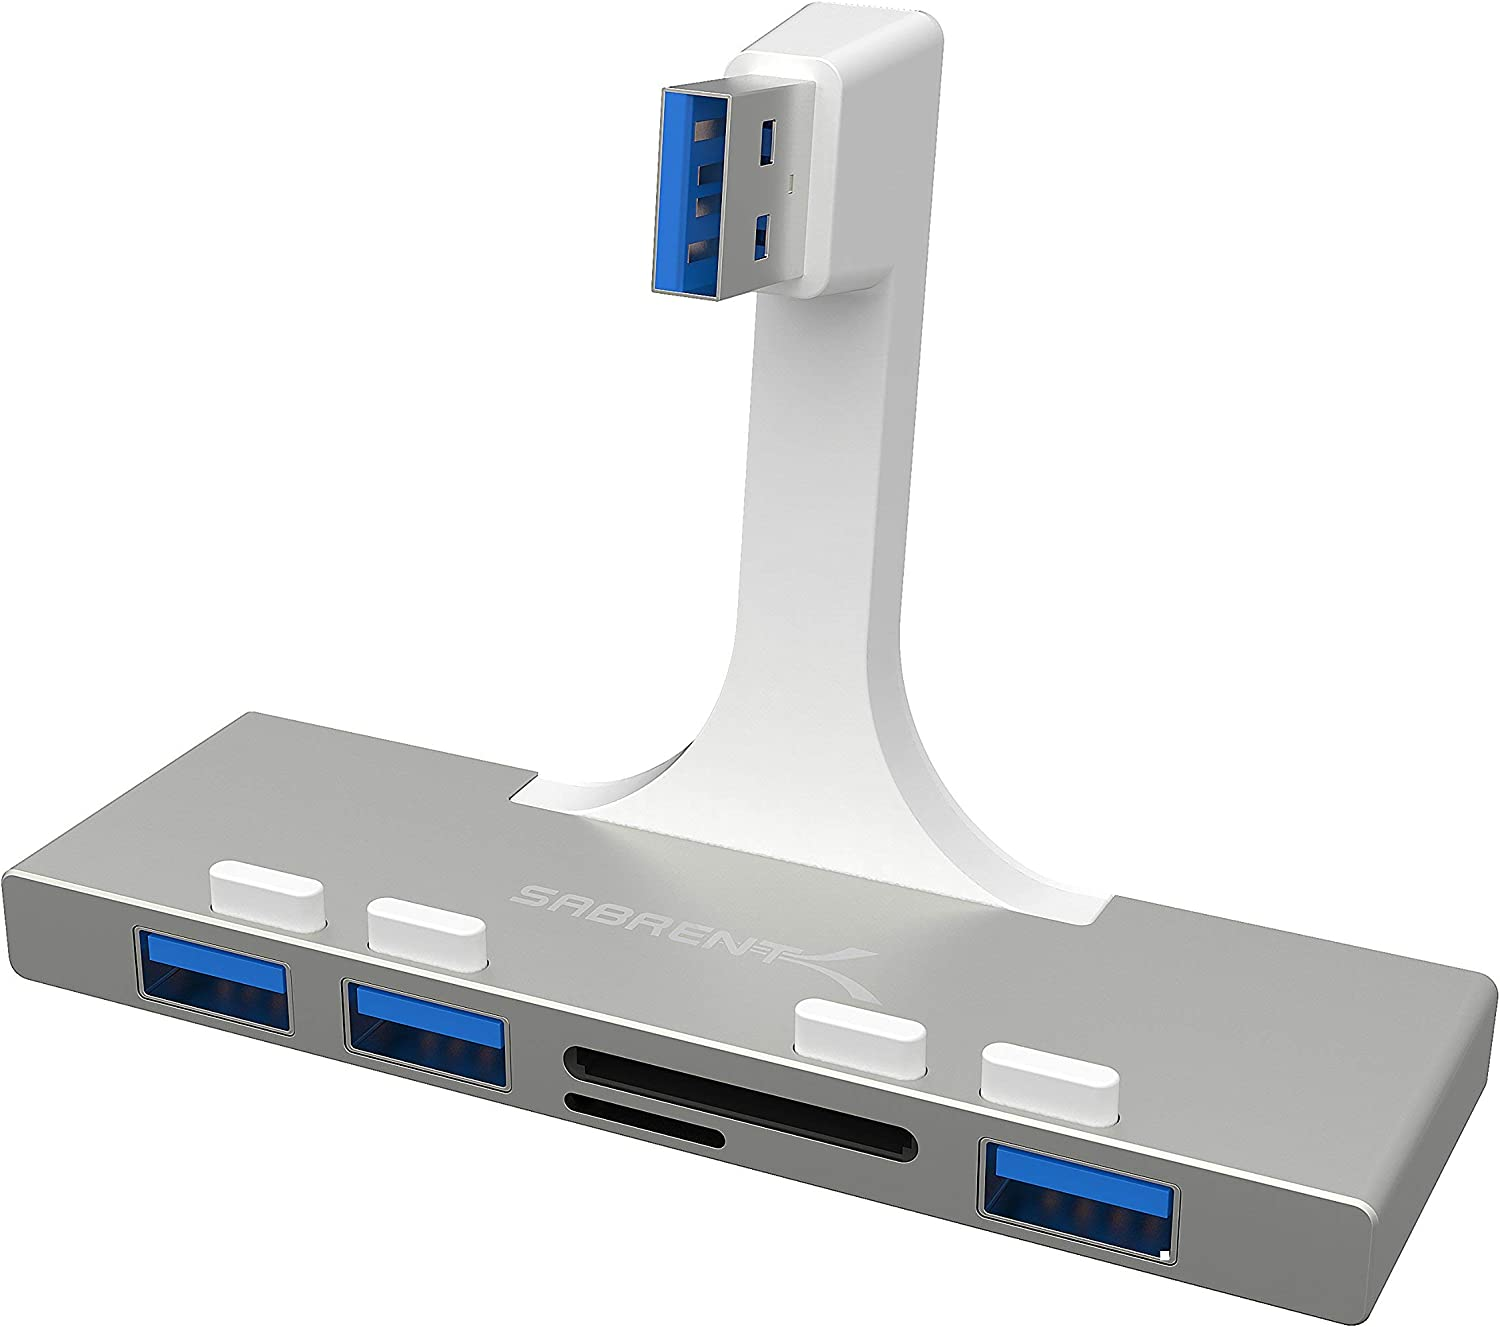 Sabrent 3-Port USB 3.0 Hub with iMac for Reader Branded Same day shipping goods Card Multi-in-1